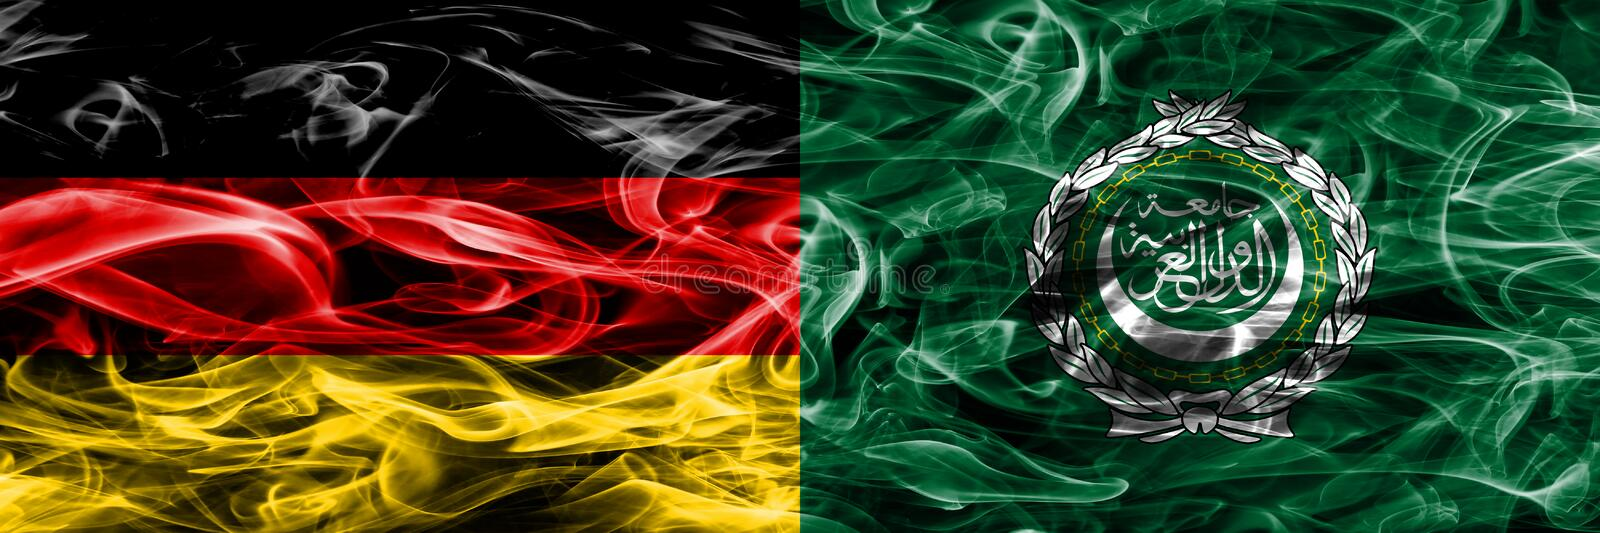 Germany vs Arab League smoke flags placed side by side. German a stock image